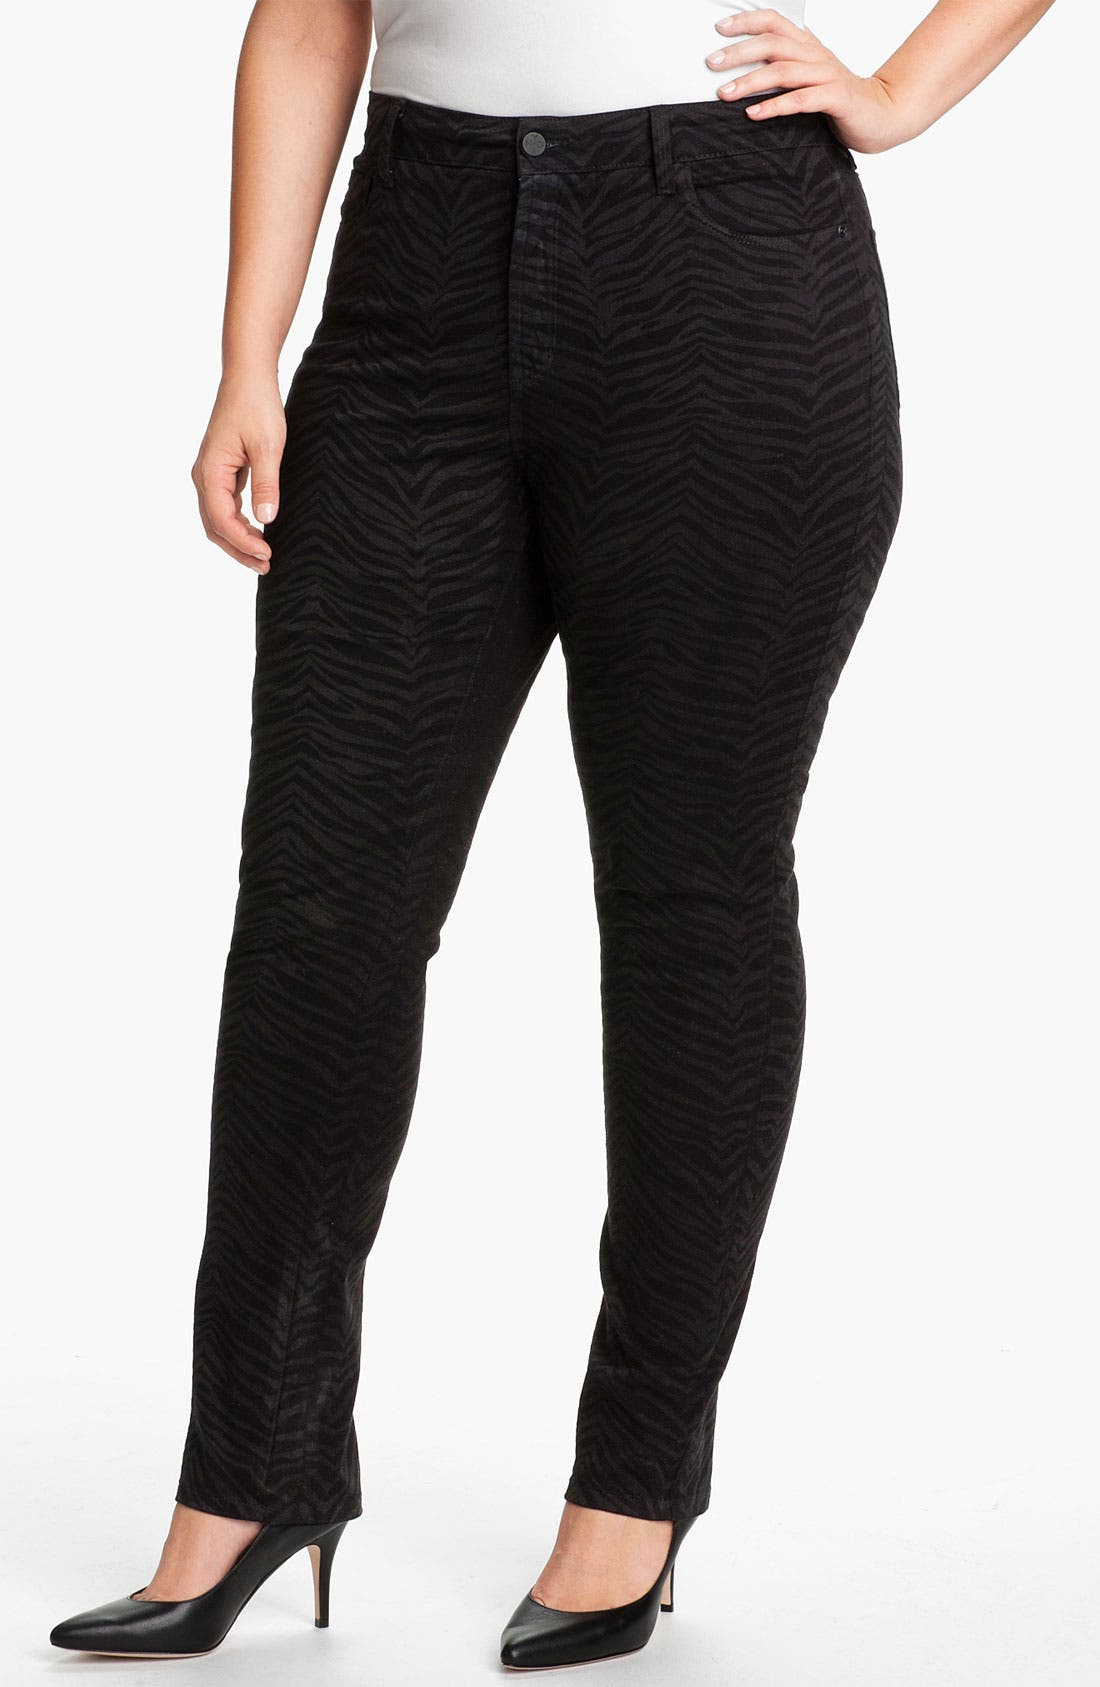 Alternate Image 1 Selected - NYDJ 'Sheri - Zebra' Print Twill Slim Jeans (Plus)